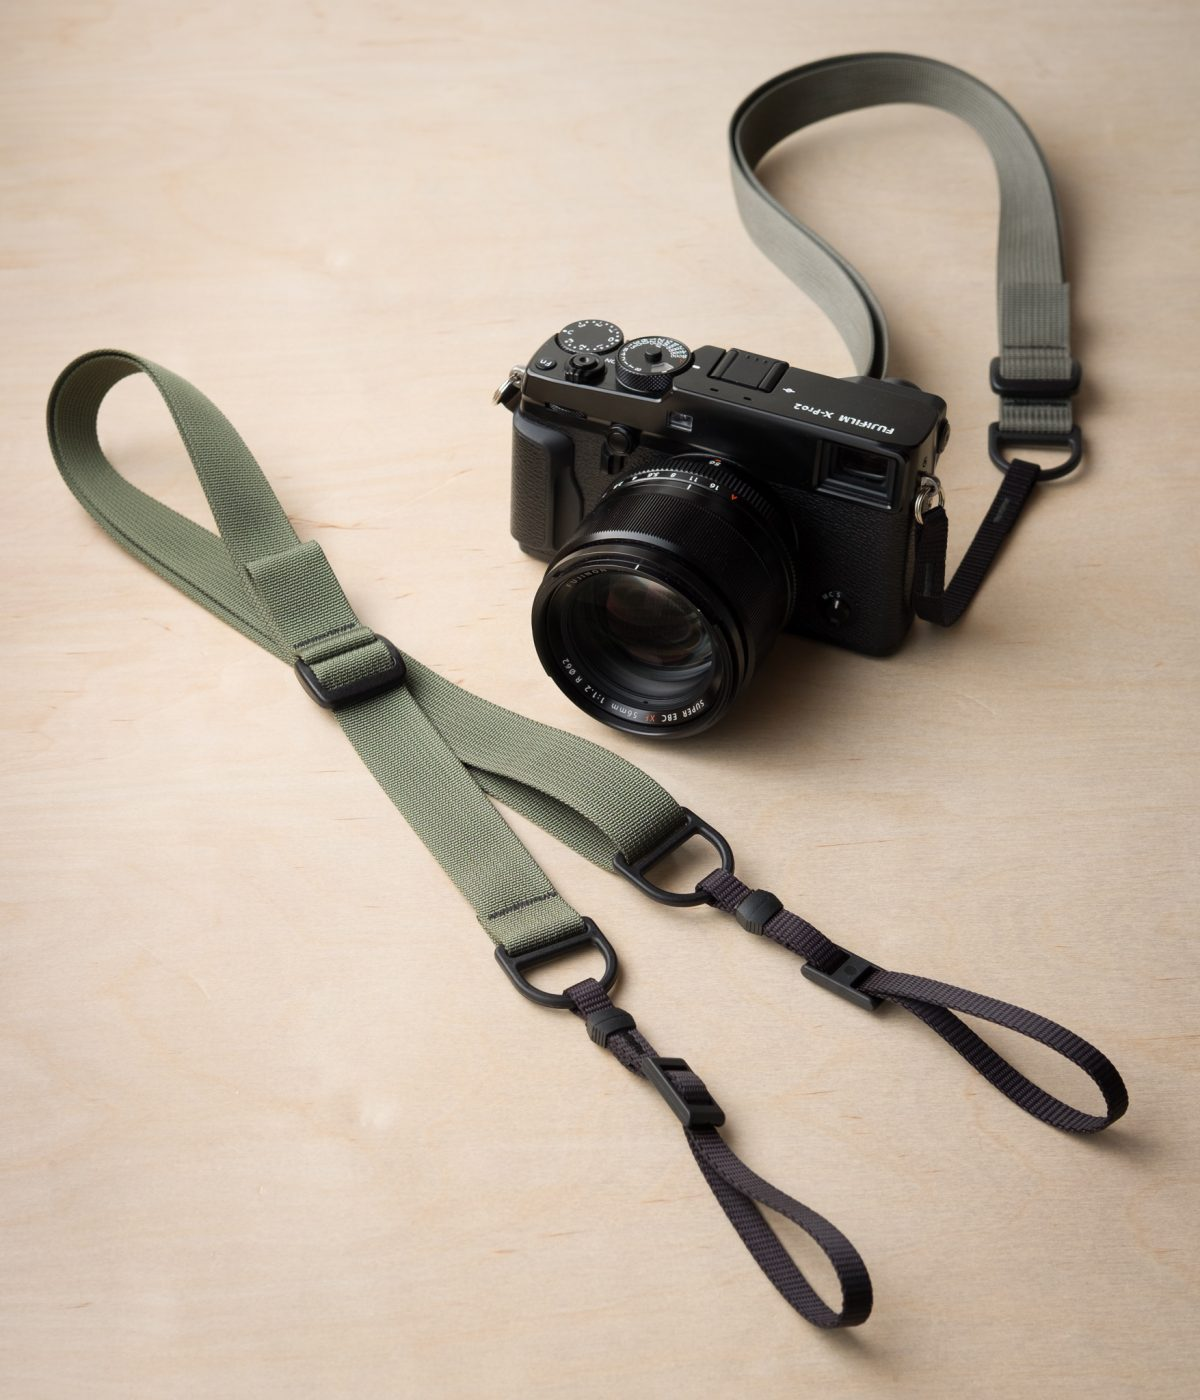 F1 Sling-Style Camera Strap, Gray on Fuji X-Pro2